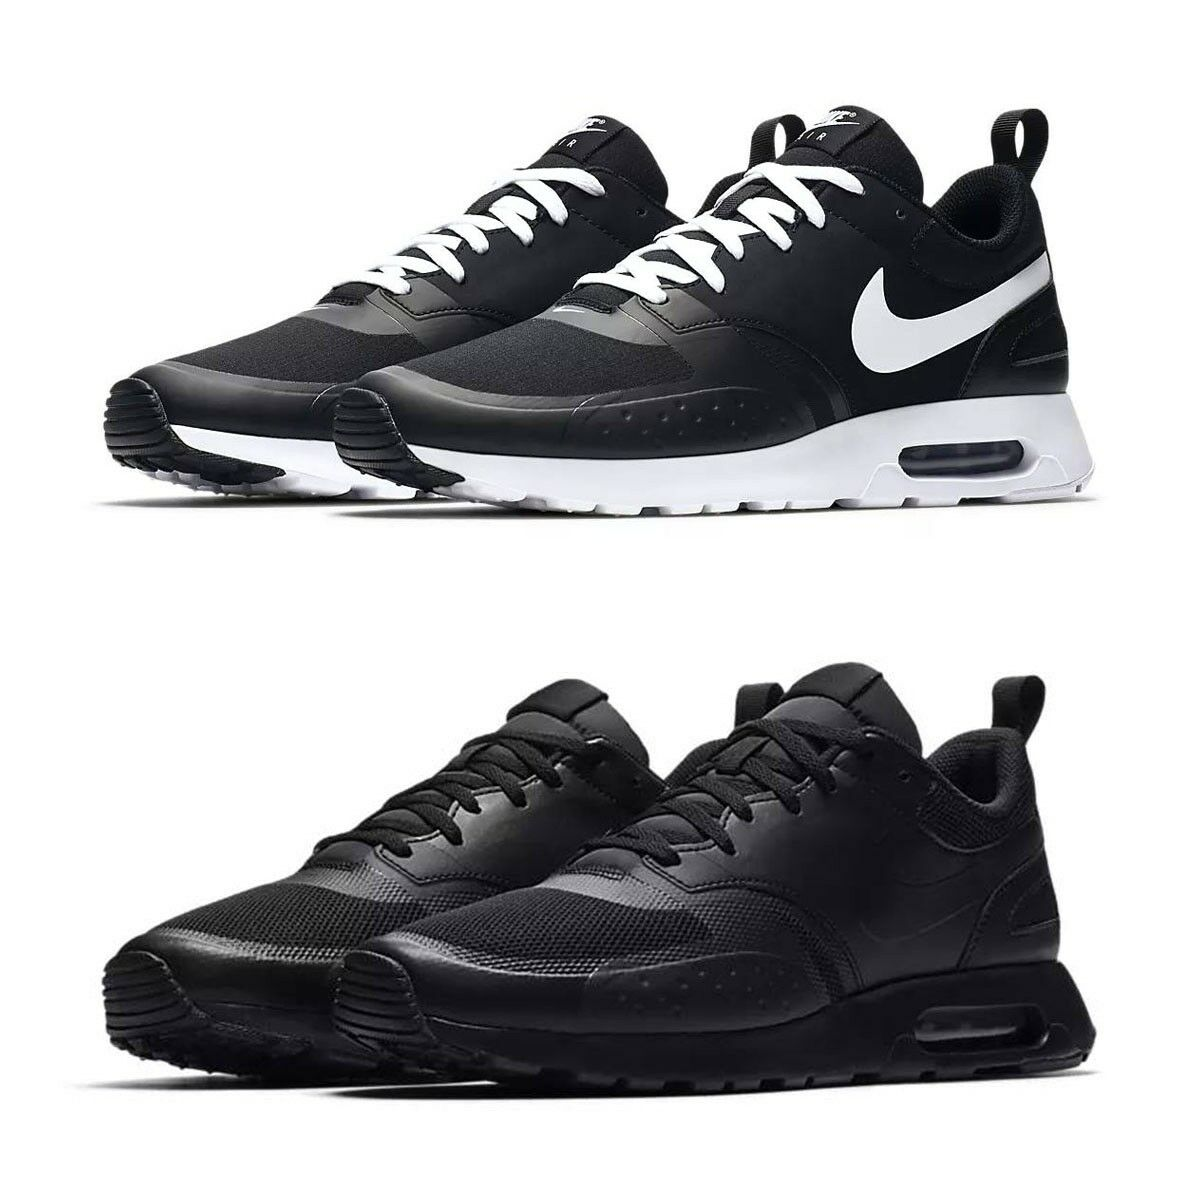 924195c9b6ffc New Nike Air Max Vision noir blanc Baskets fonctionnement Tailles Sport chaussures  homme All Tailles fonctionnement 500c0a